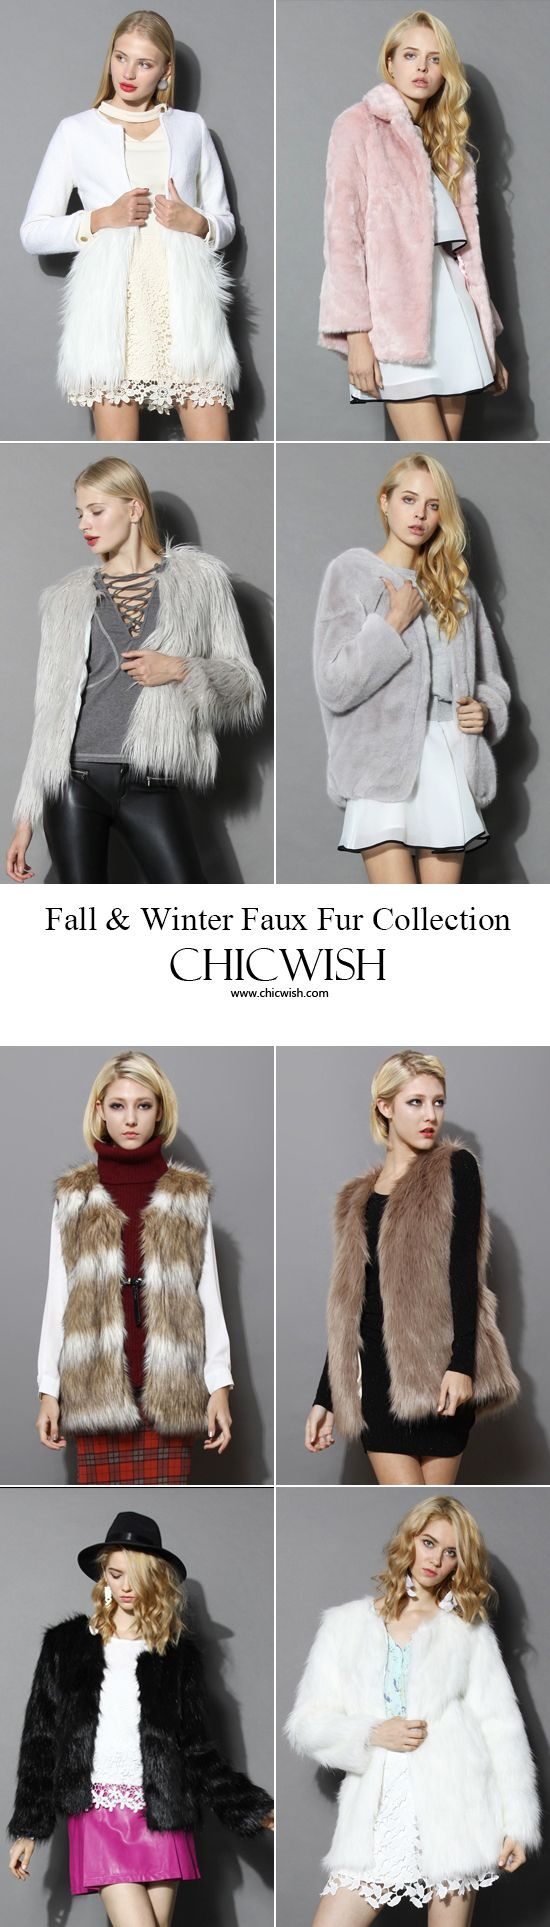 Fall and winter faux fur collection  chicwish.com